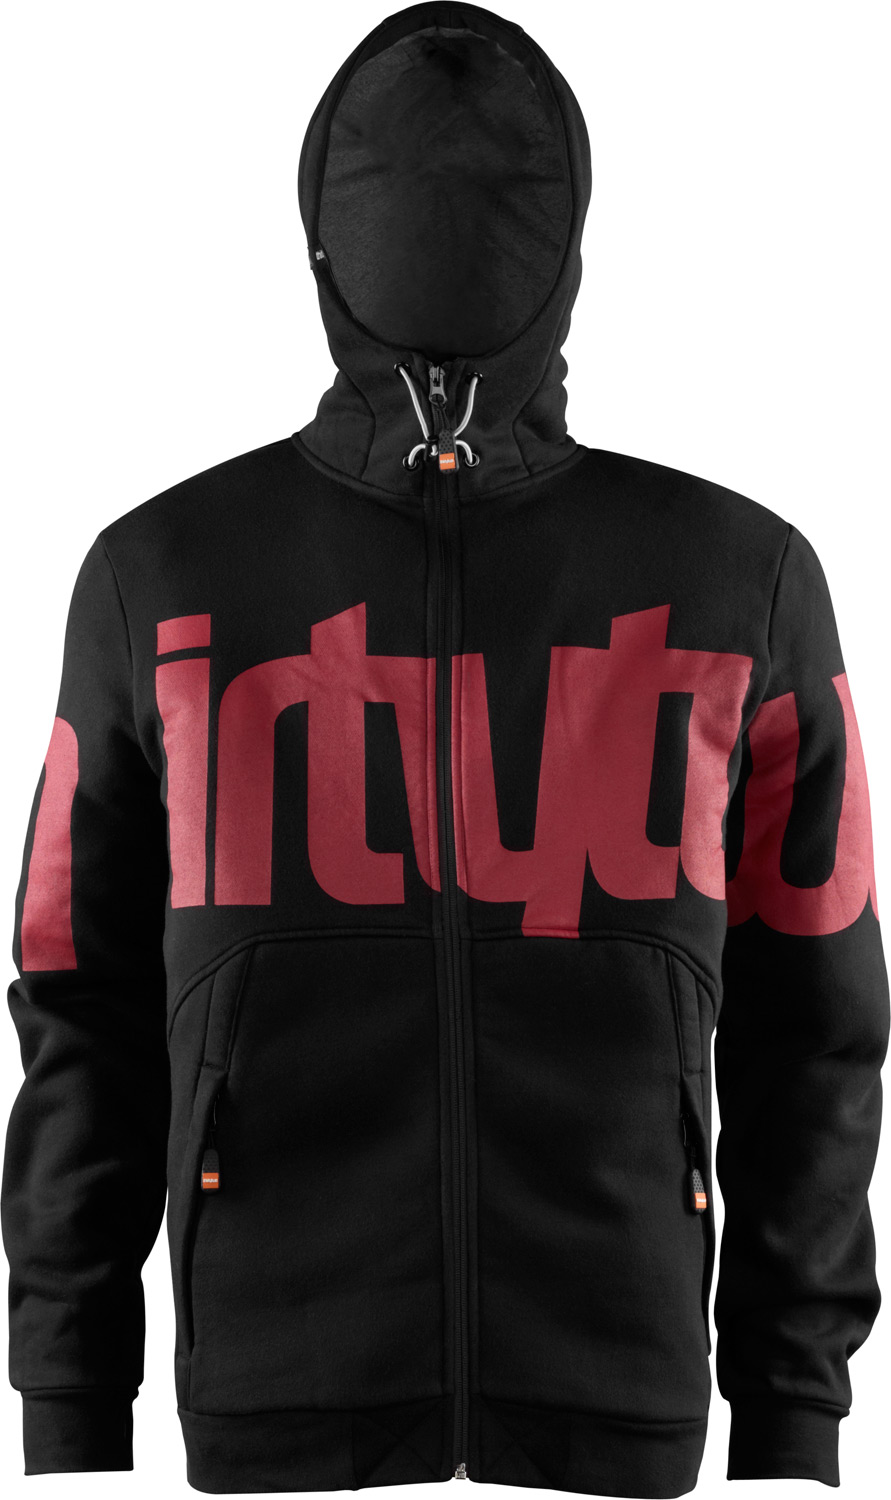 Key Features of the 32 - Thirty Two Reppin Hoodie: ISPO award winning zip hoodie with STI Repel technology - $50.95